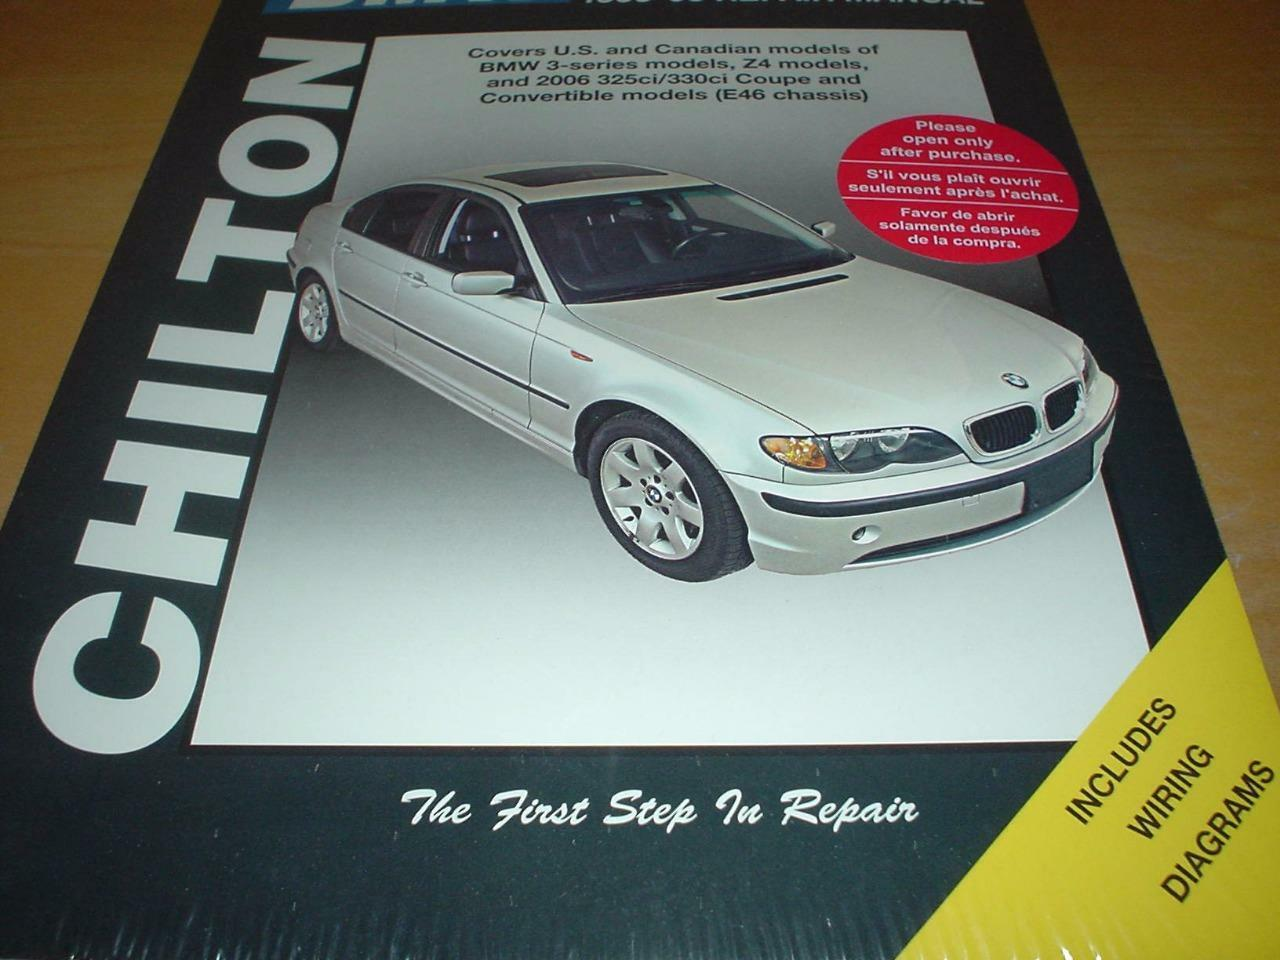 Bmw E46 3 Series Convertible Handbook Owners Manual Ebay Wiring Diagram Norton Secured Powered By Verisign